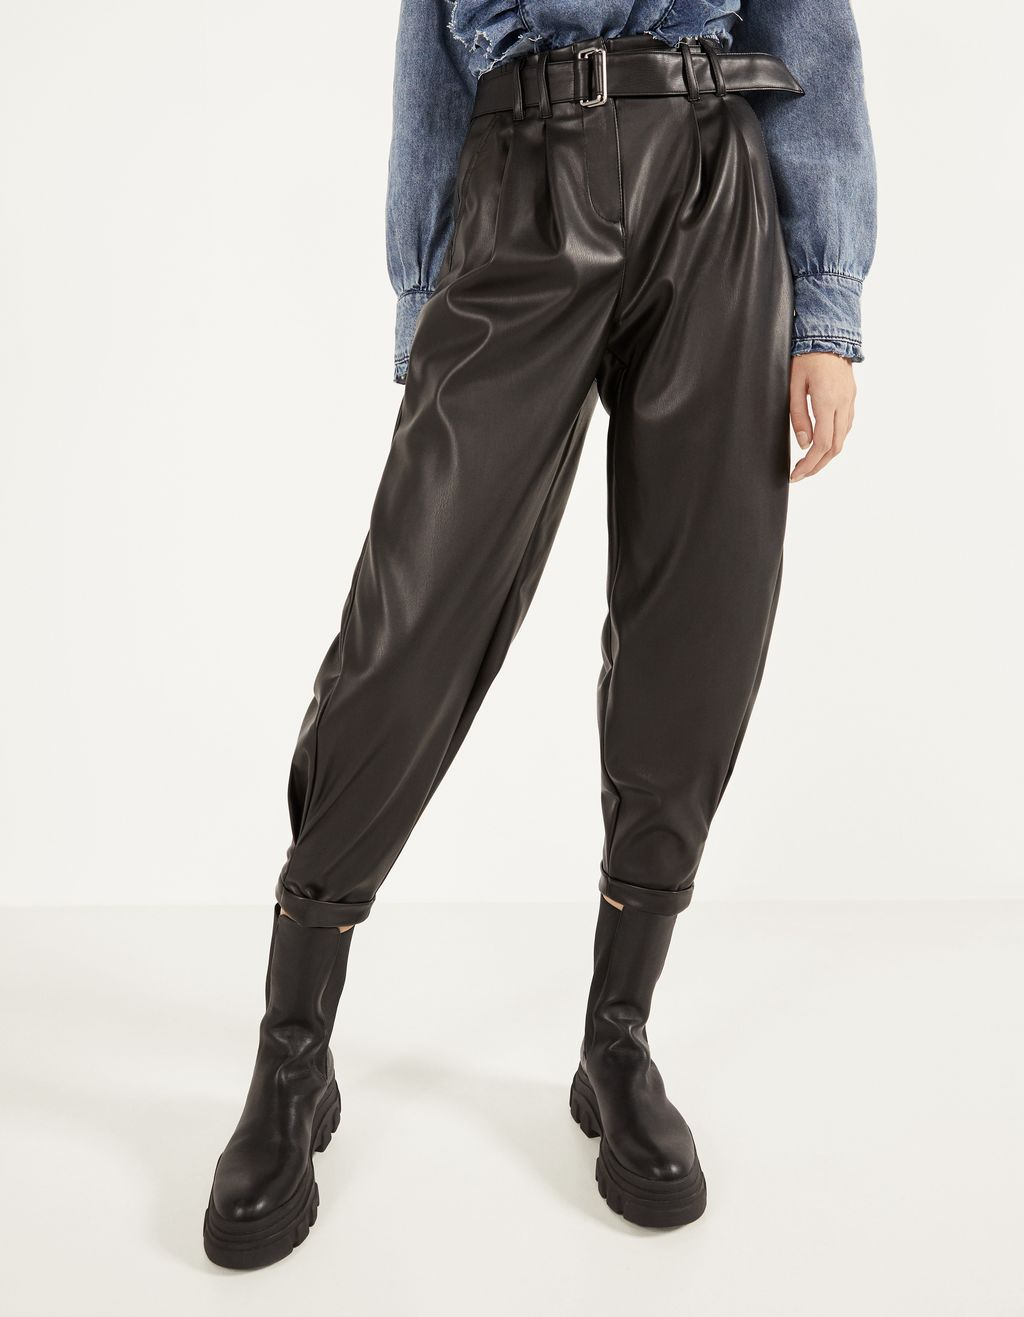 Pantalon ample en similicuir